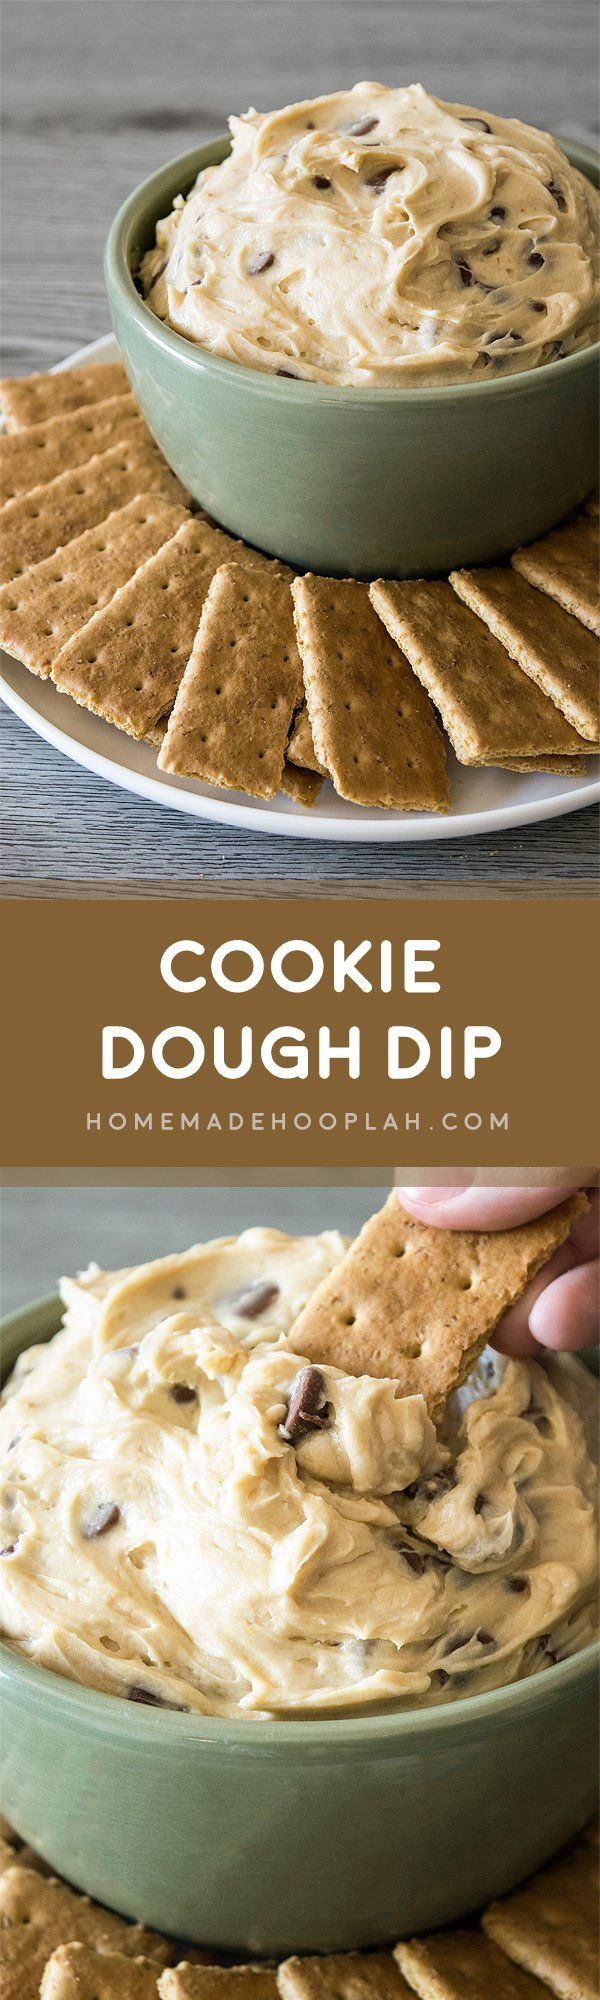 Cookie Dough Dip! Dazzle your guests by serving up dessert first with this ultra creamy cookie dough dip (eggless and no bake!)   HomemadeHooplah.com